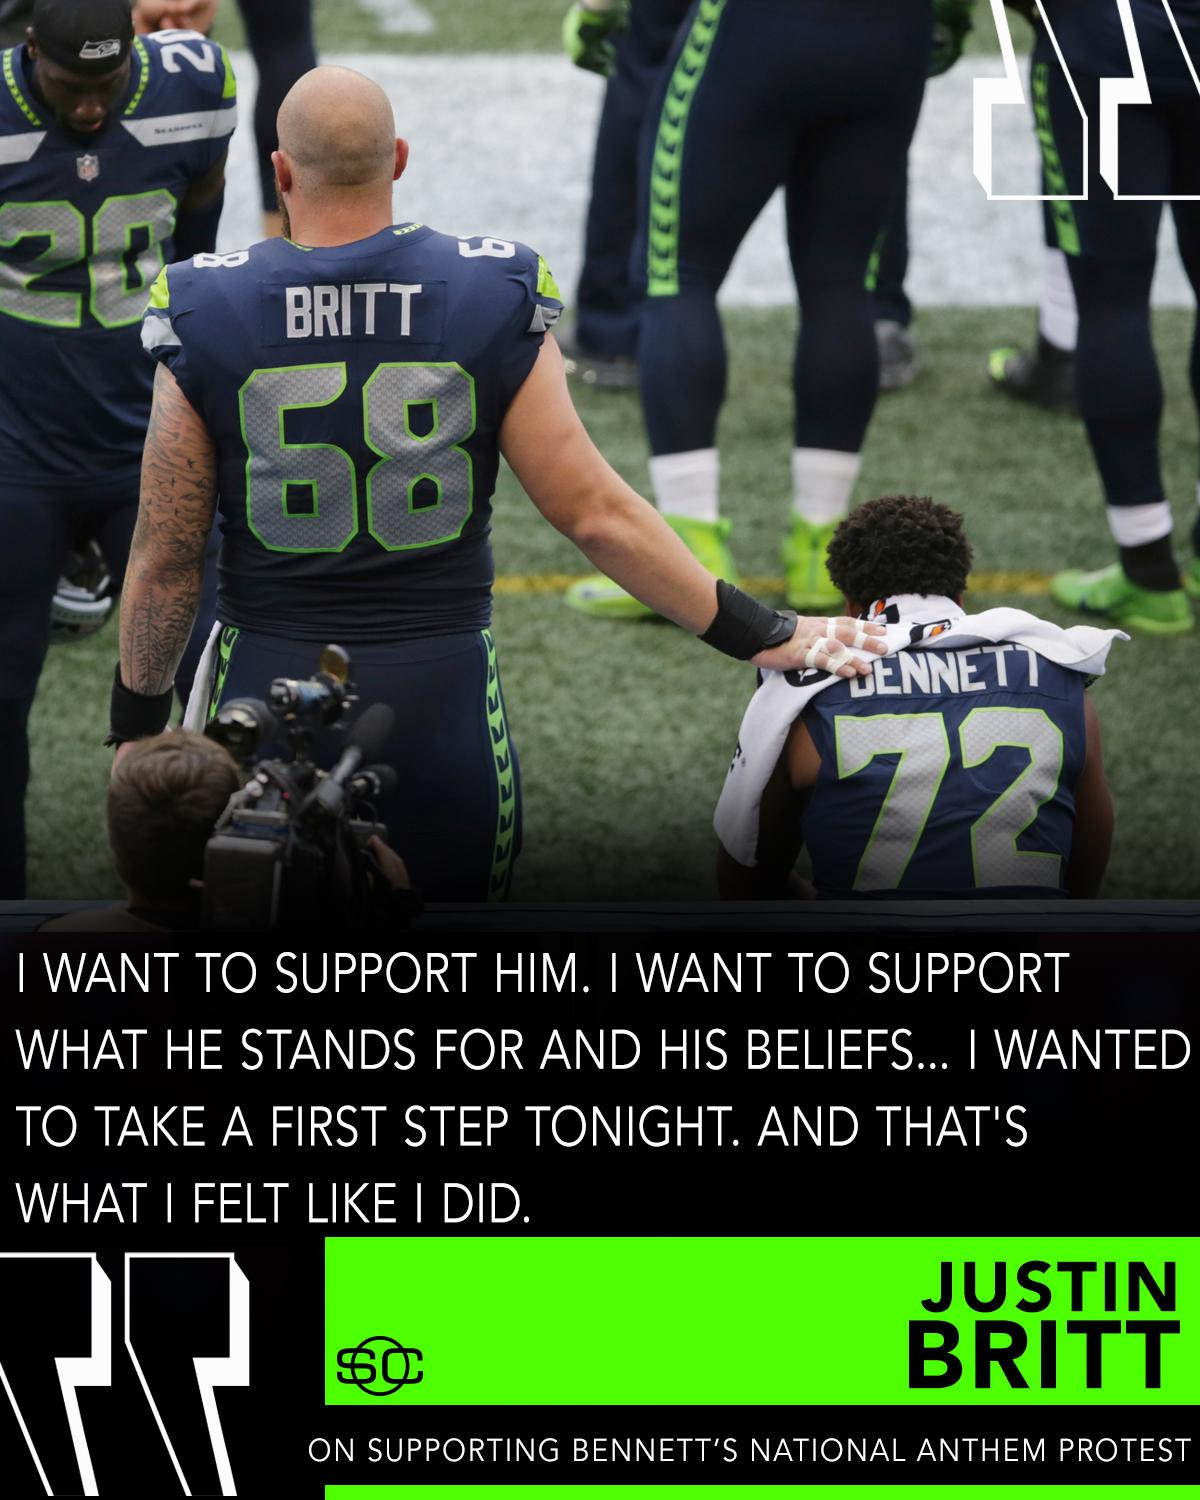 Justin Britt showed support of teammate Michael Bennett's national anthem protest on Friday. https://t.co/FxxF0YQ9vr https://t.co/pzFCwUVela